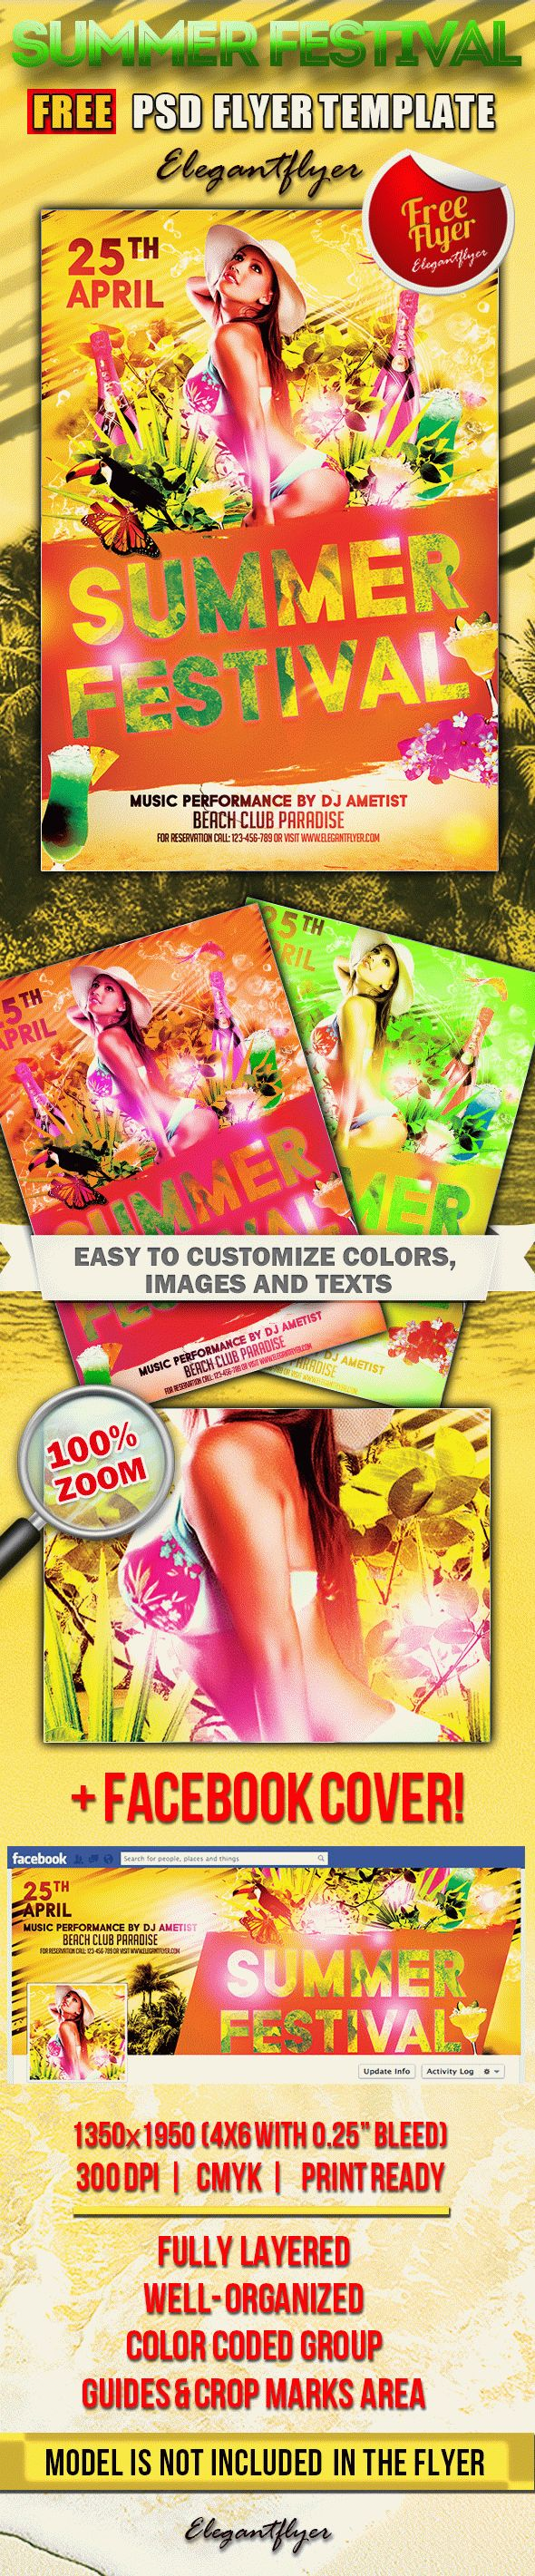 Summer Festival – Free Flyer PSD Template + Facebook Cover